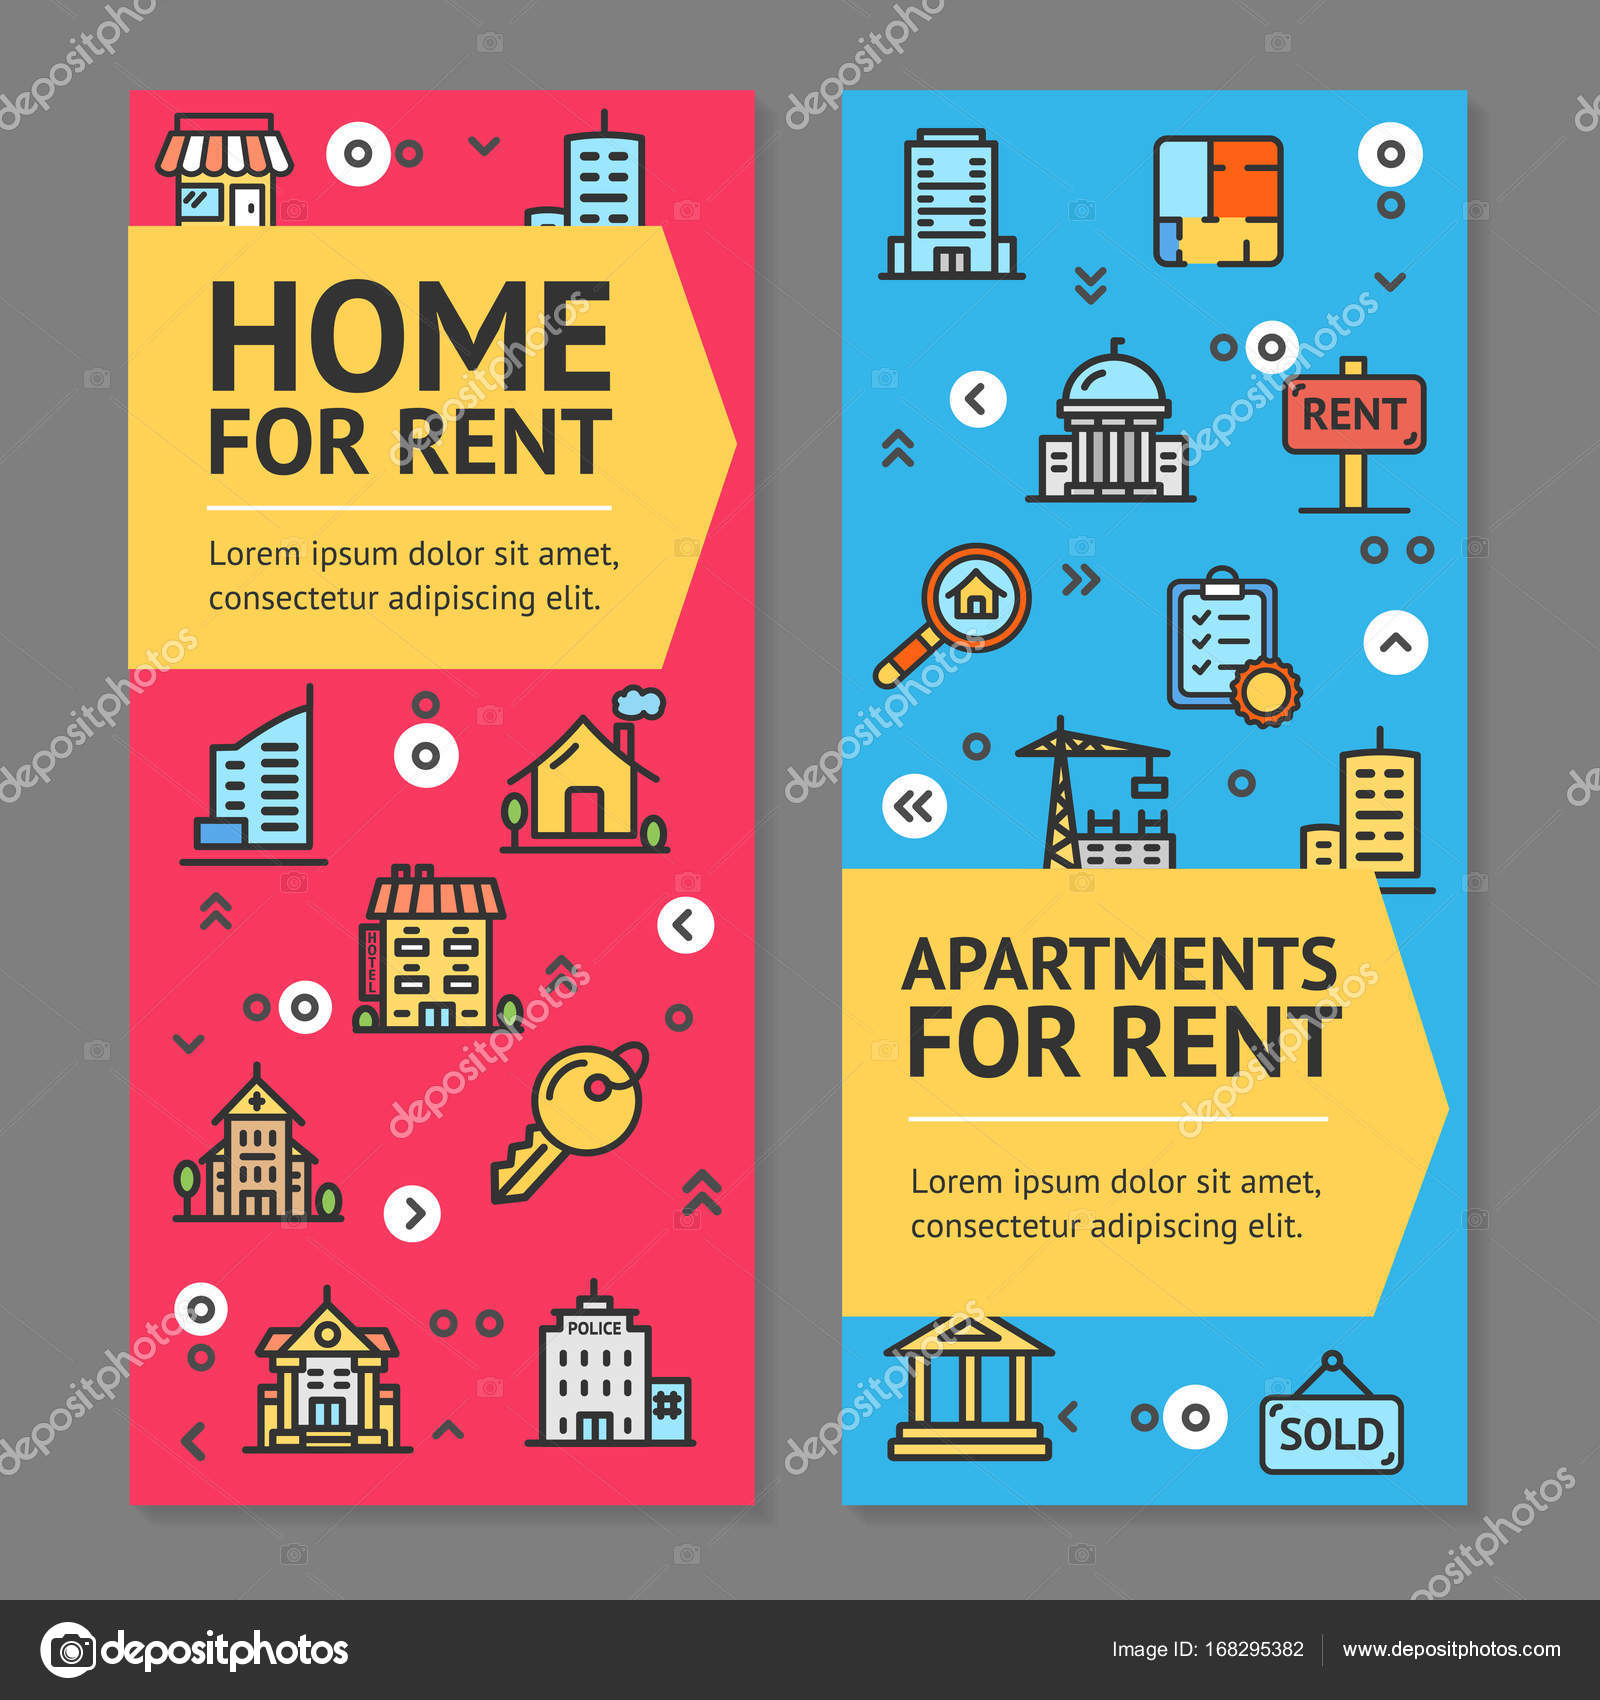 Building House Or Home And Apartment For Rent Flyer Banner Posters Card Set  Elements Architecture For Web And App Design. Vector Illustration Of Two  Banners ...